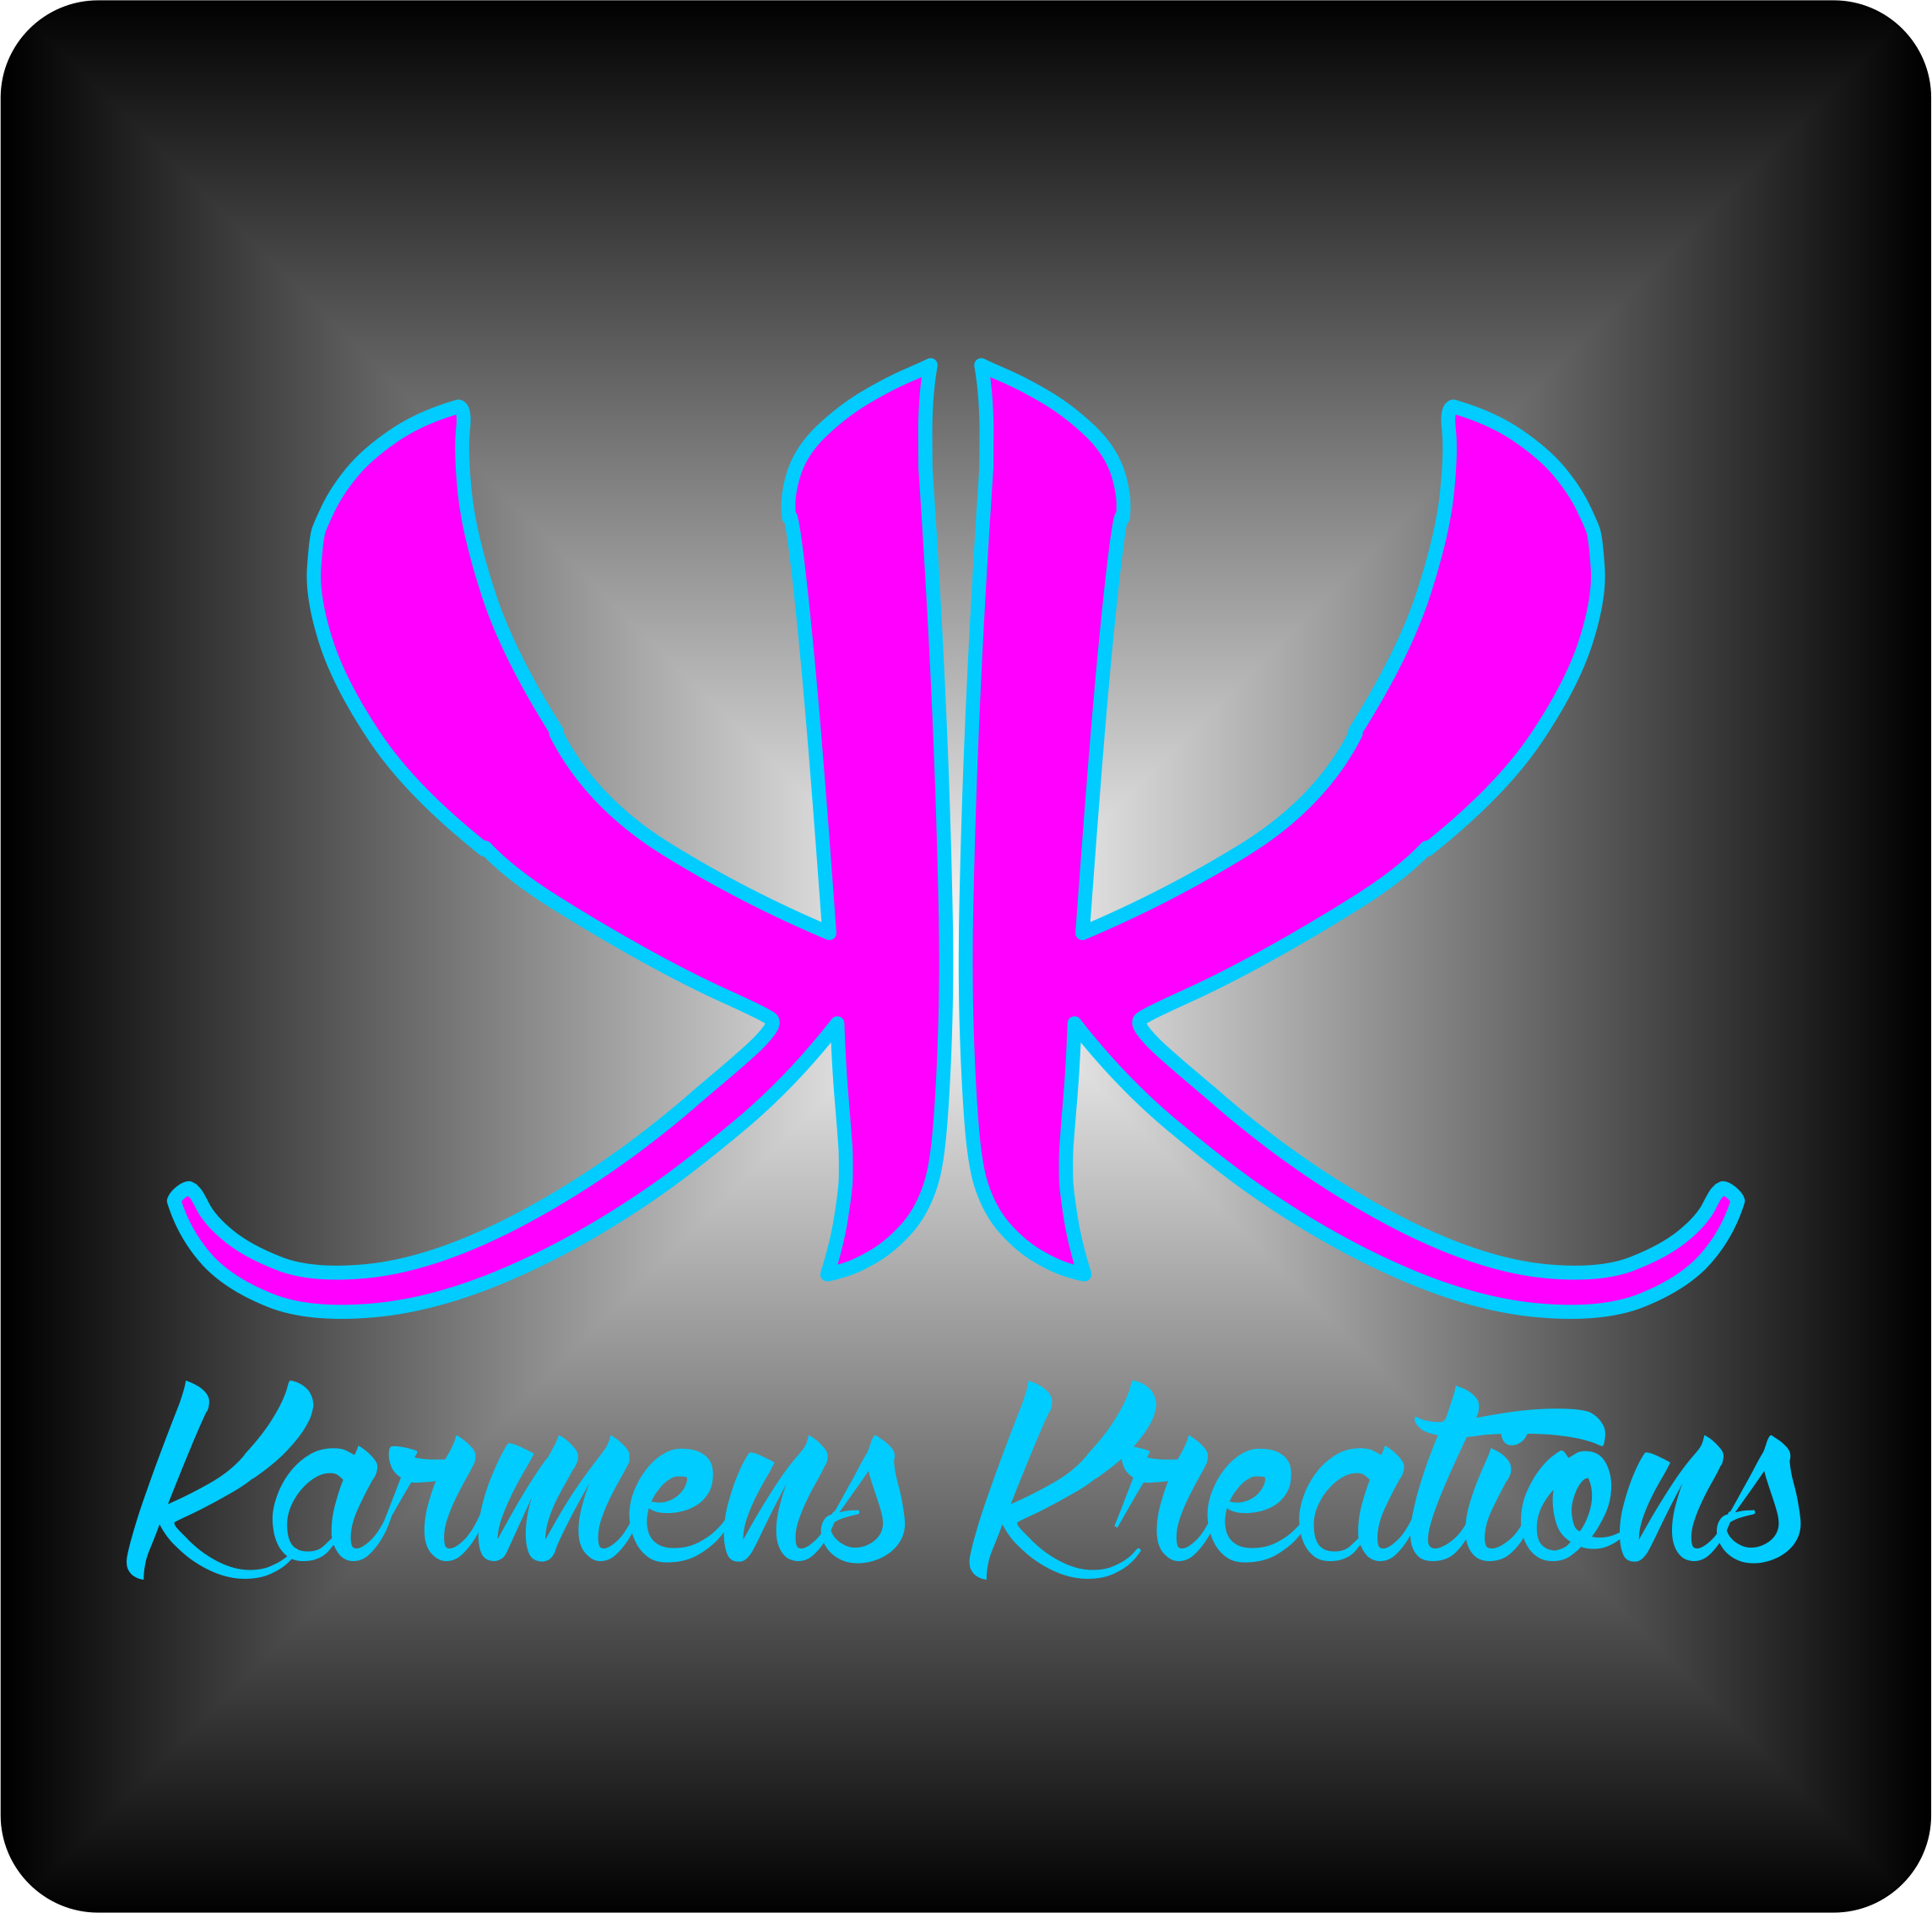 Electric karmen's